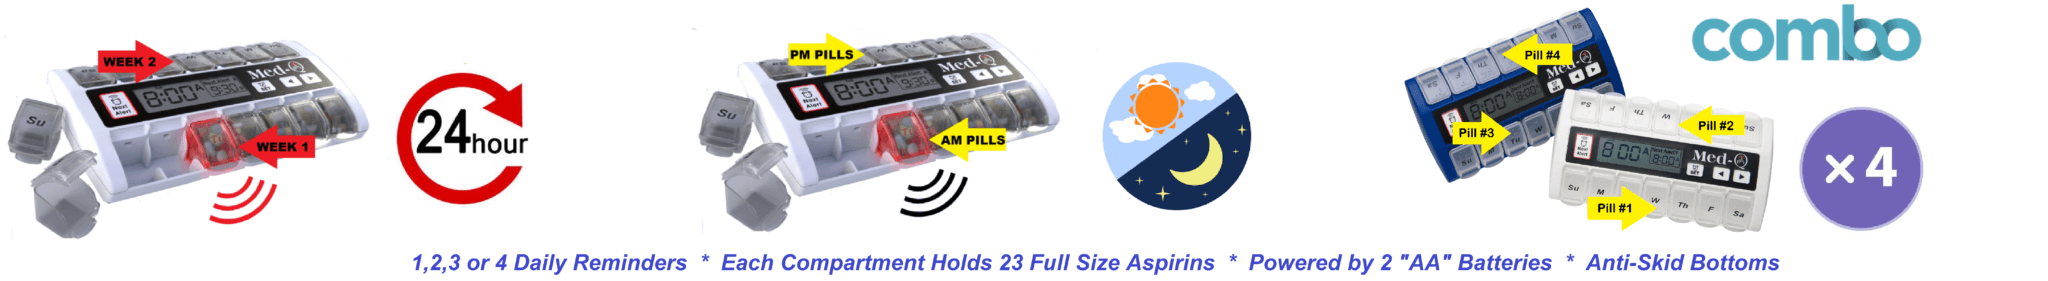 Smart Pill medication box